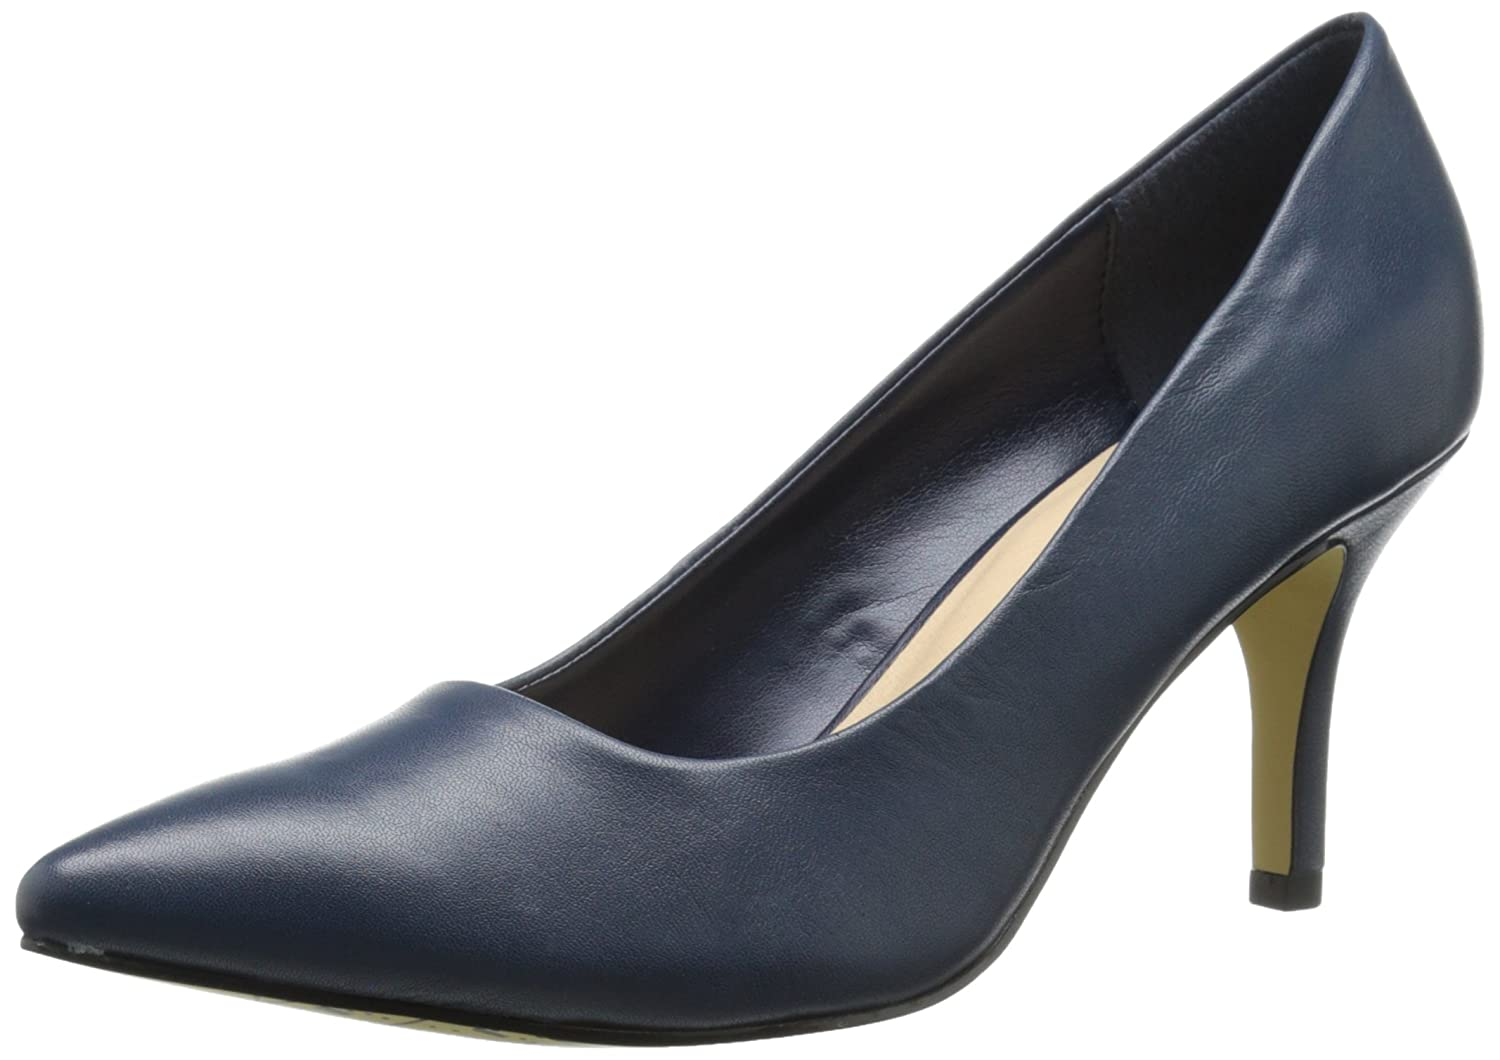 Bella Vita Women's Define Dress Pump B00ZIC5SCK 10 B(M) US|Navy Leather